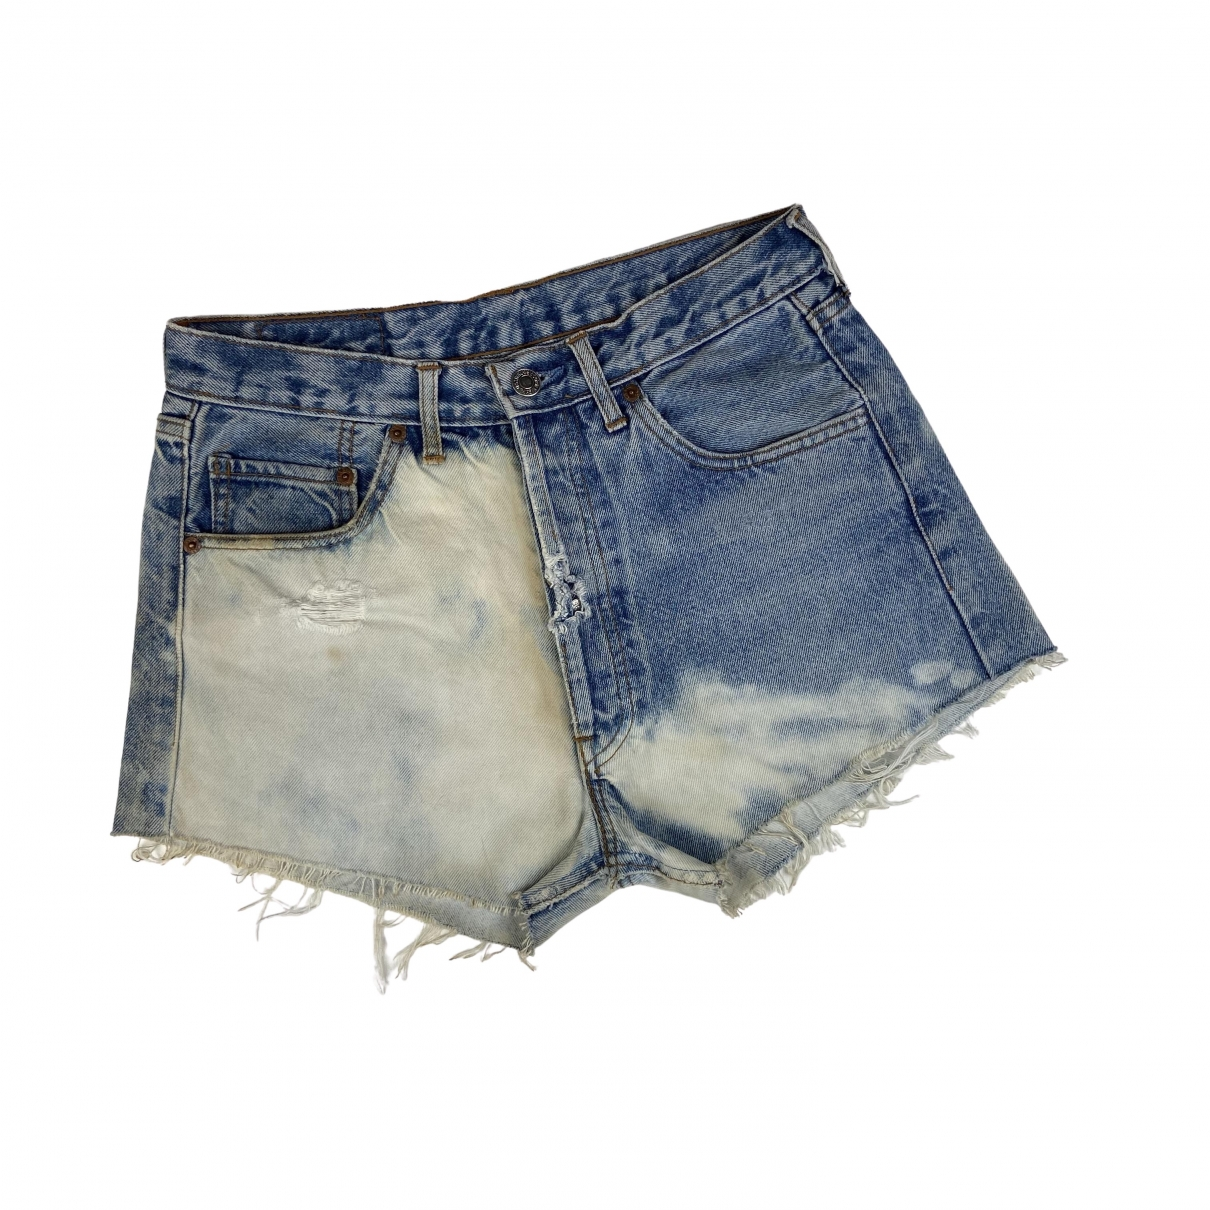 Levi's Vintage Clothing \N White Denim - Jeans Shorts for Women S International